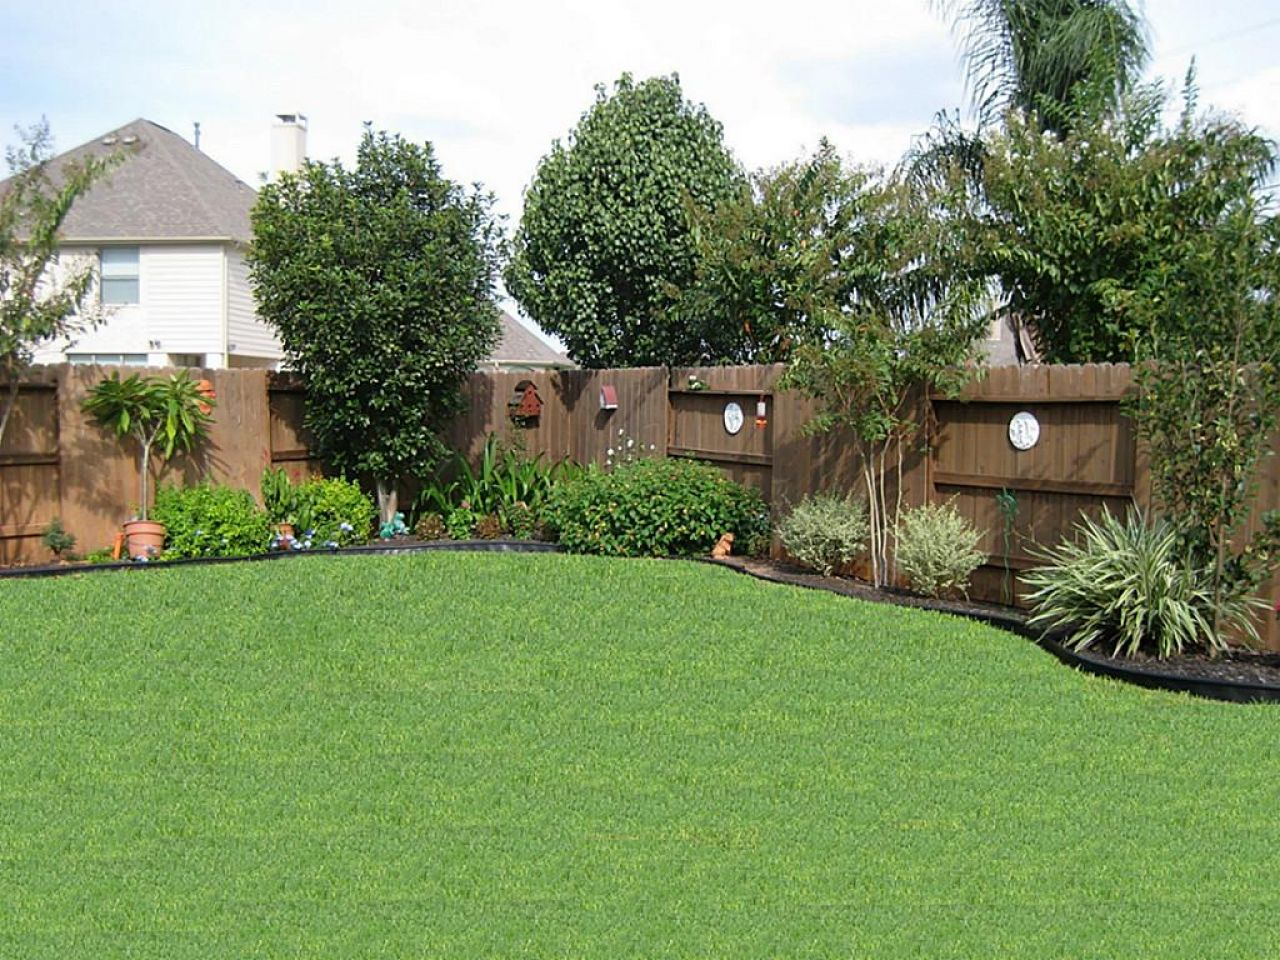 Simple Backyard Landscaping Ideas On A Budget Green House pertaining to Simple Backyard Landscaping